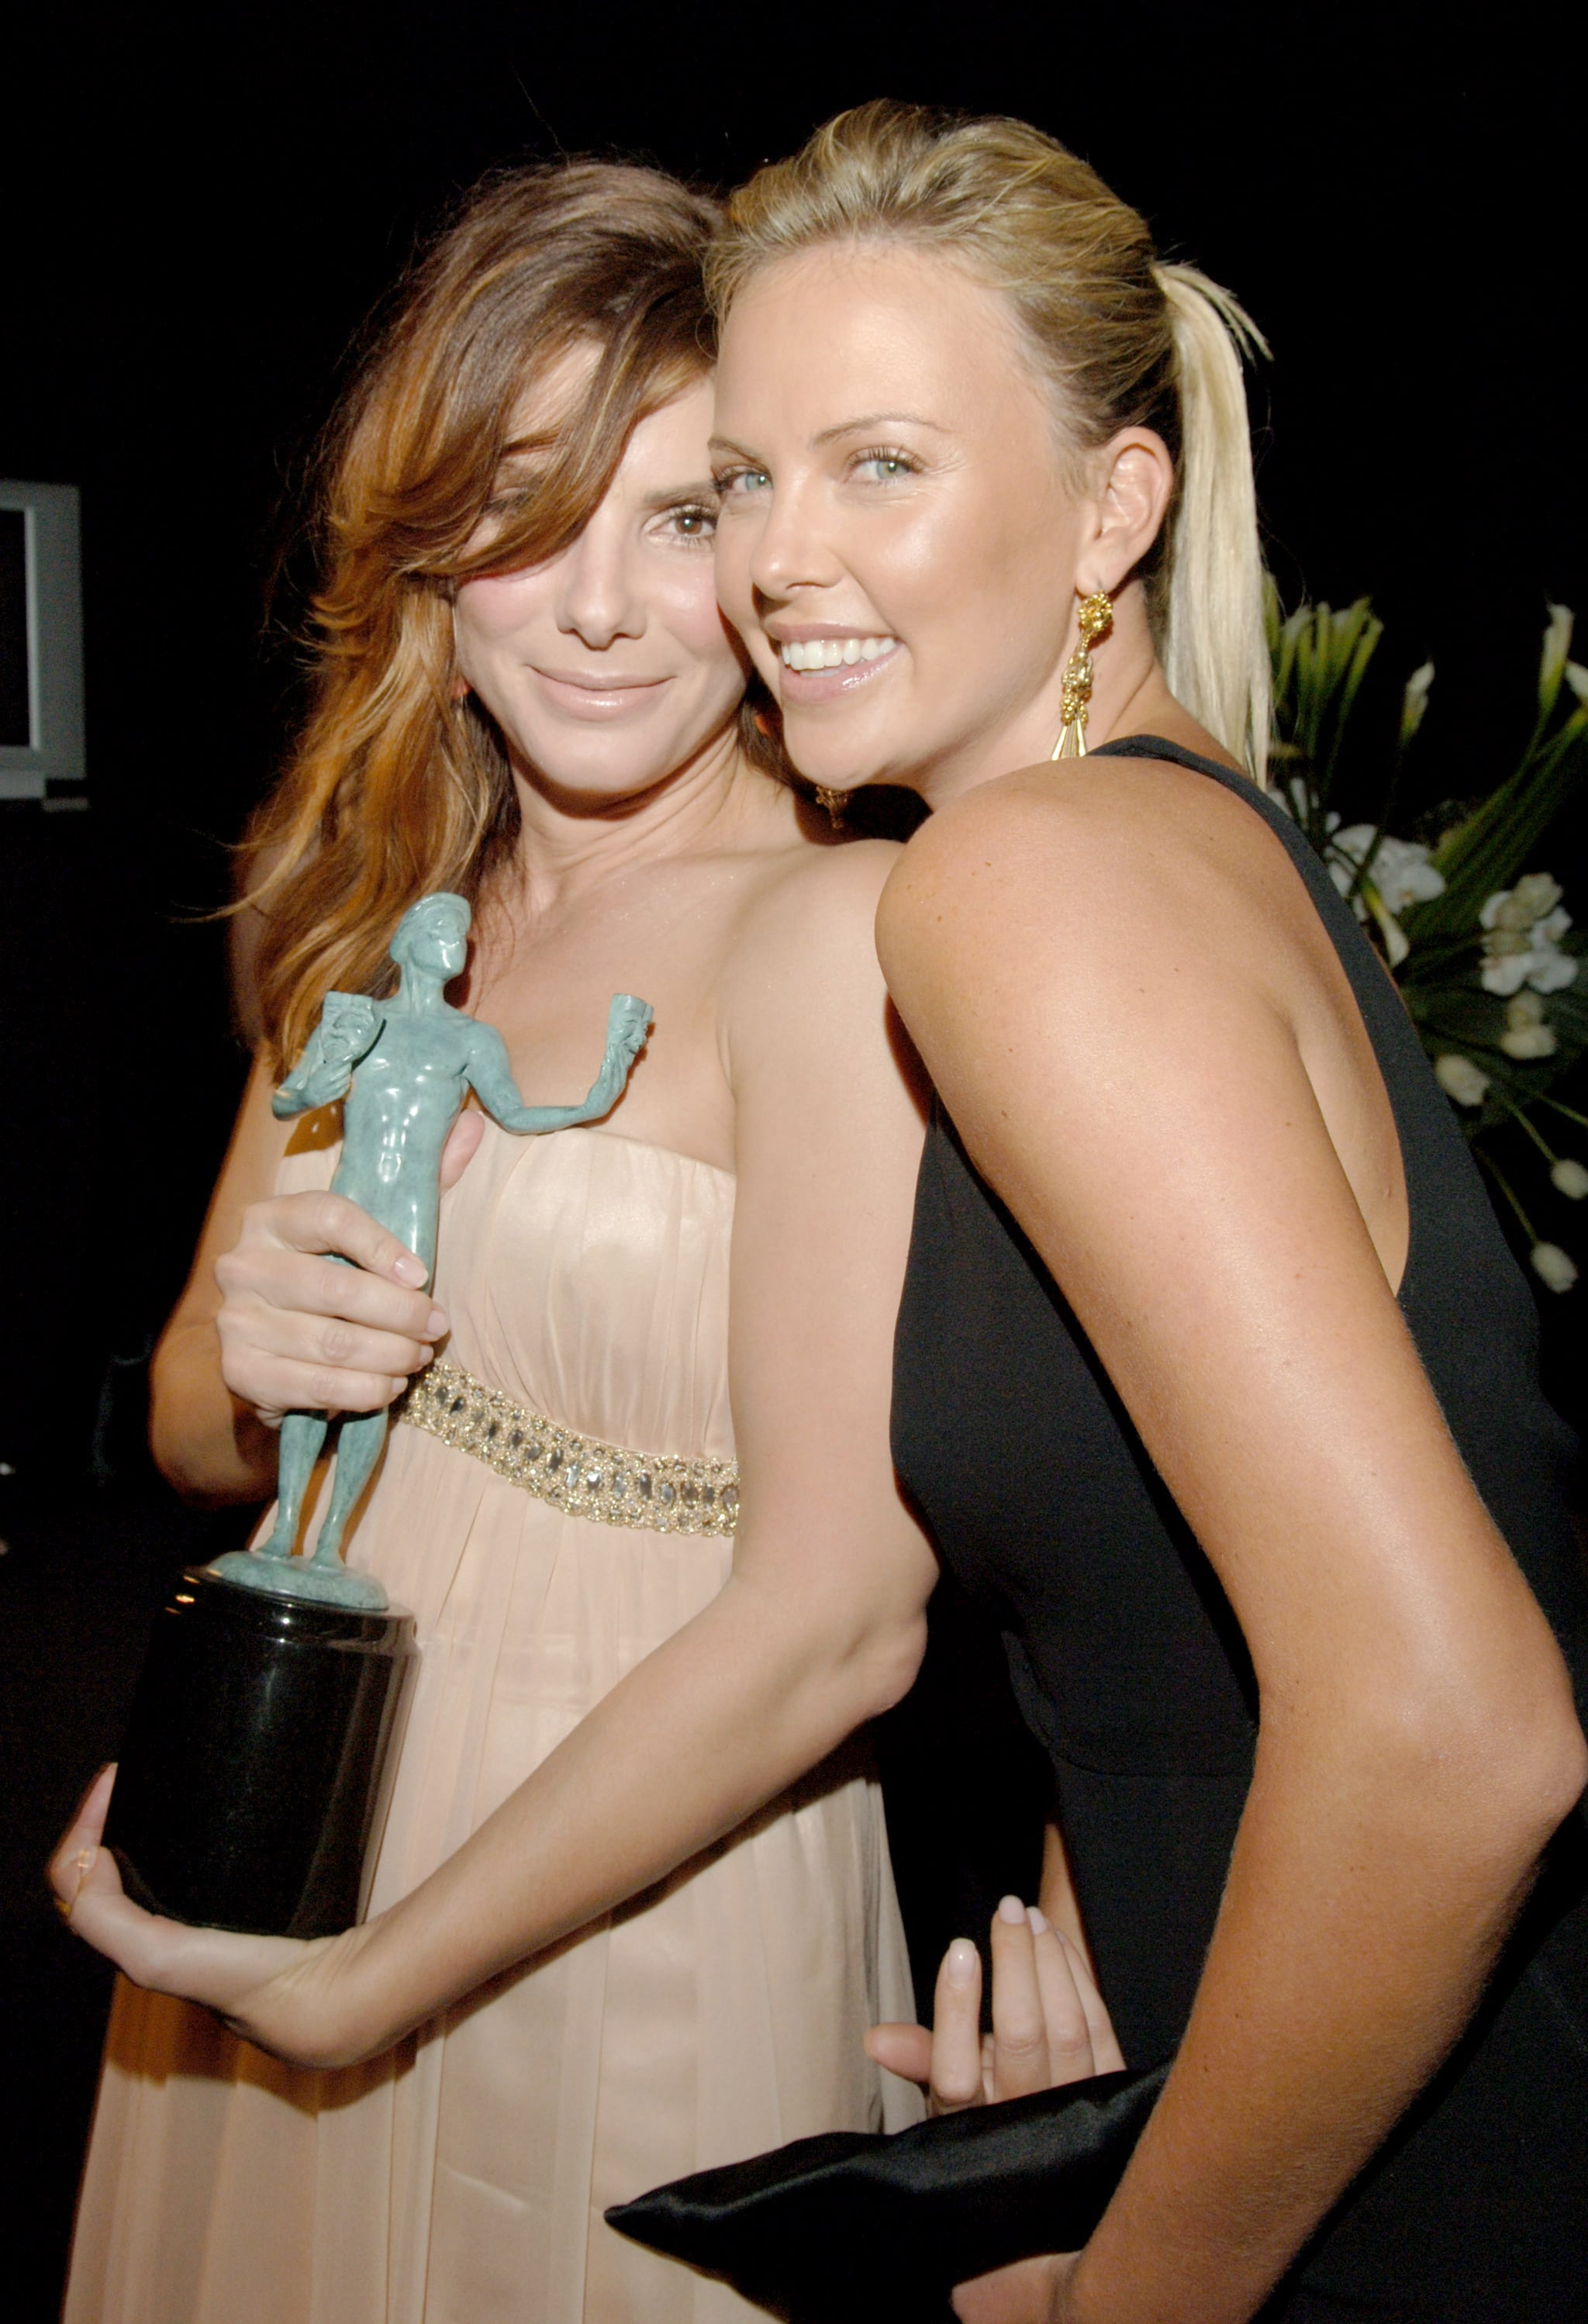 Sandra and Charlize Theron snapped a photo backstage at the January 2006 SAG Awards in LA.